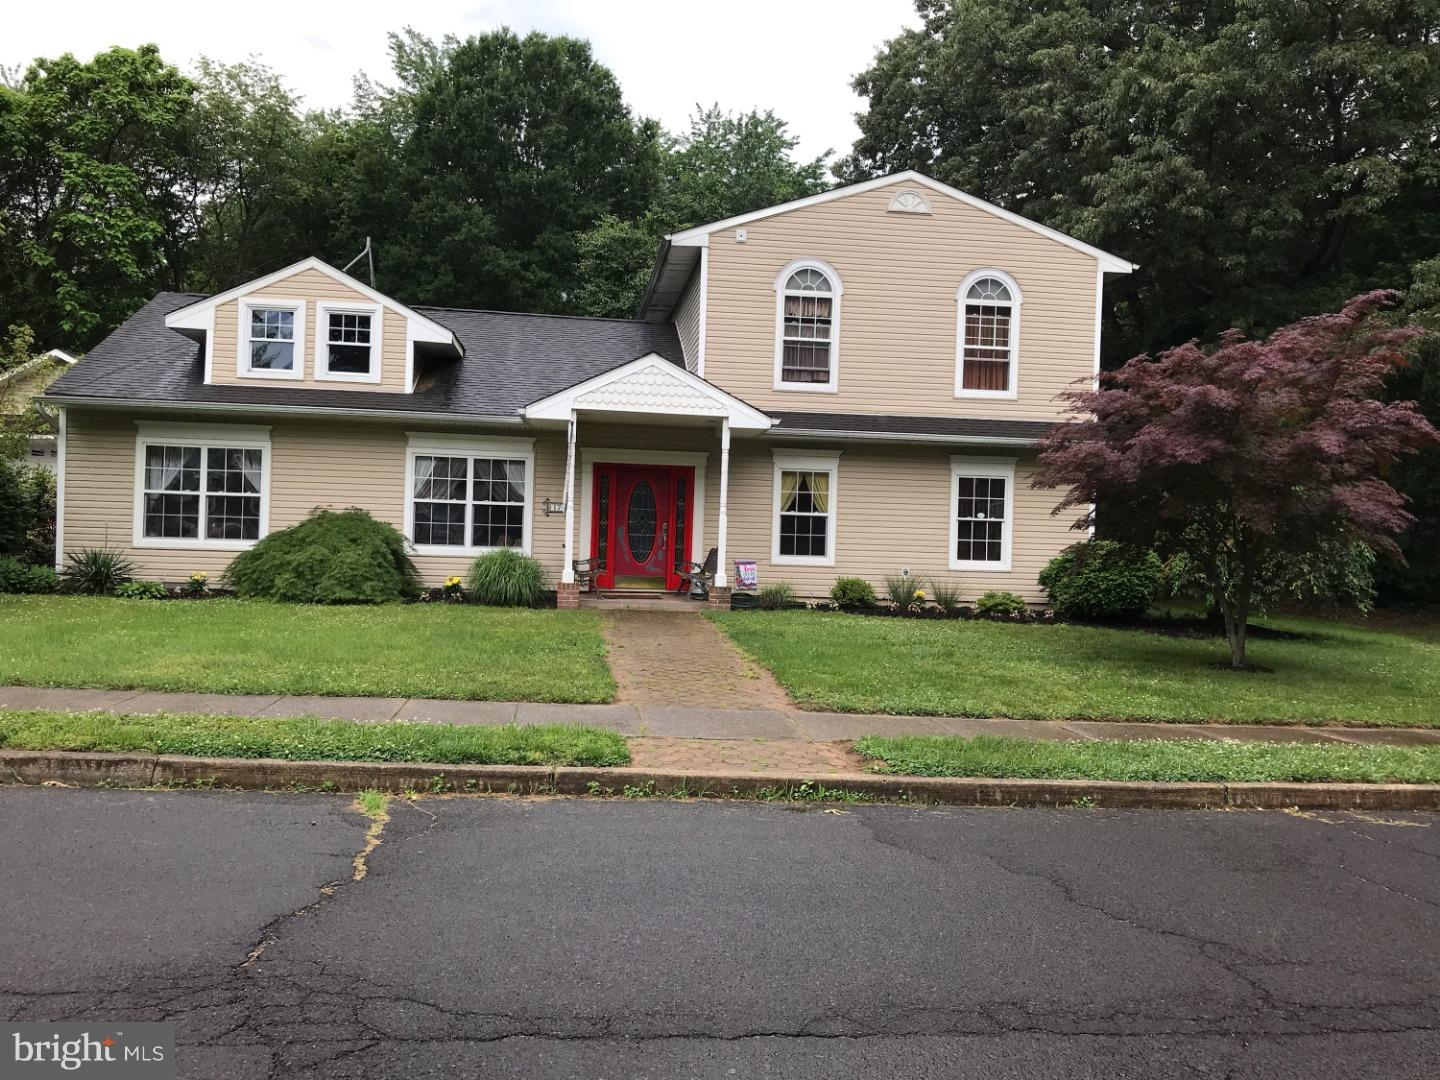 Single Family Home for Sale at 17 TALL TIMBER Lane Florence, New Jersey 08016 United States